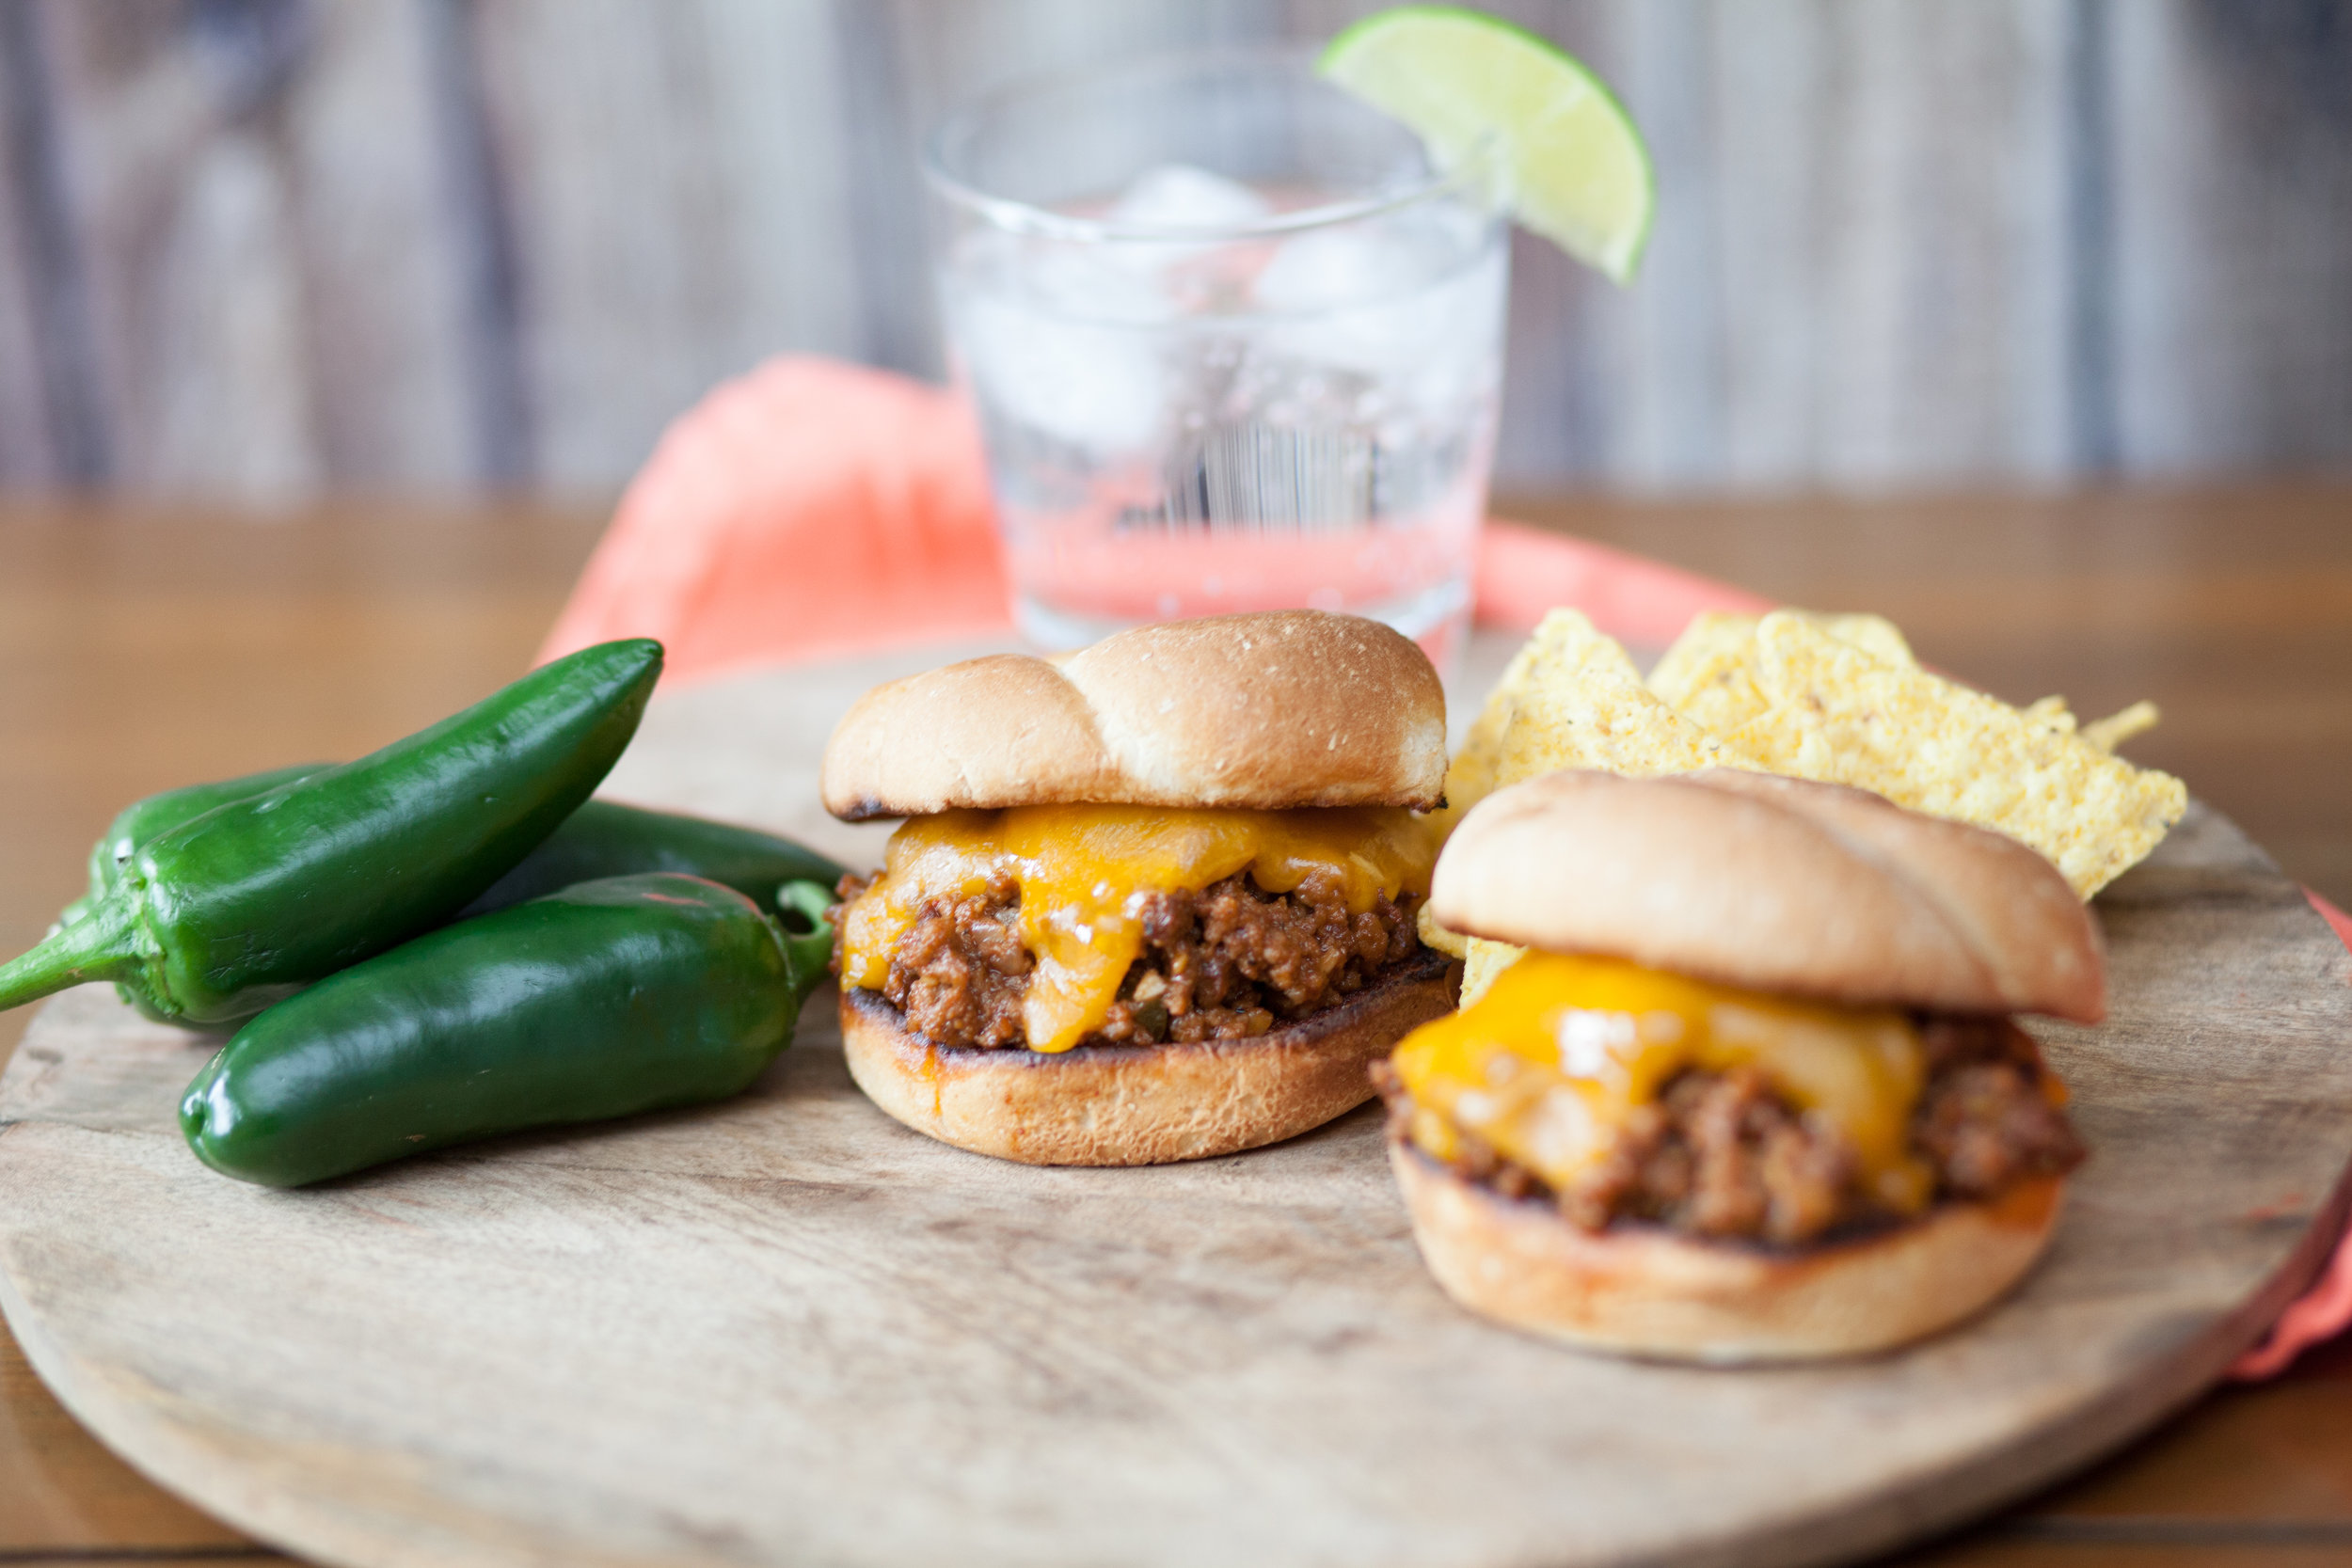 3. Sloppy Chori-Joes - We are far too pumped on this one. Sloppy Joes are amazing, but with Chorizo in lieu of ground beef is so perfect and simple we can't believe it hasn't been a thing since Sloppy Joes were a thing. Your friends will lose their mind over this one.